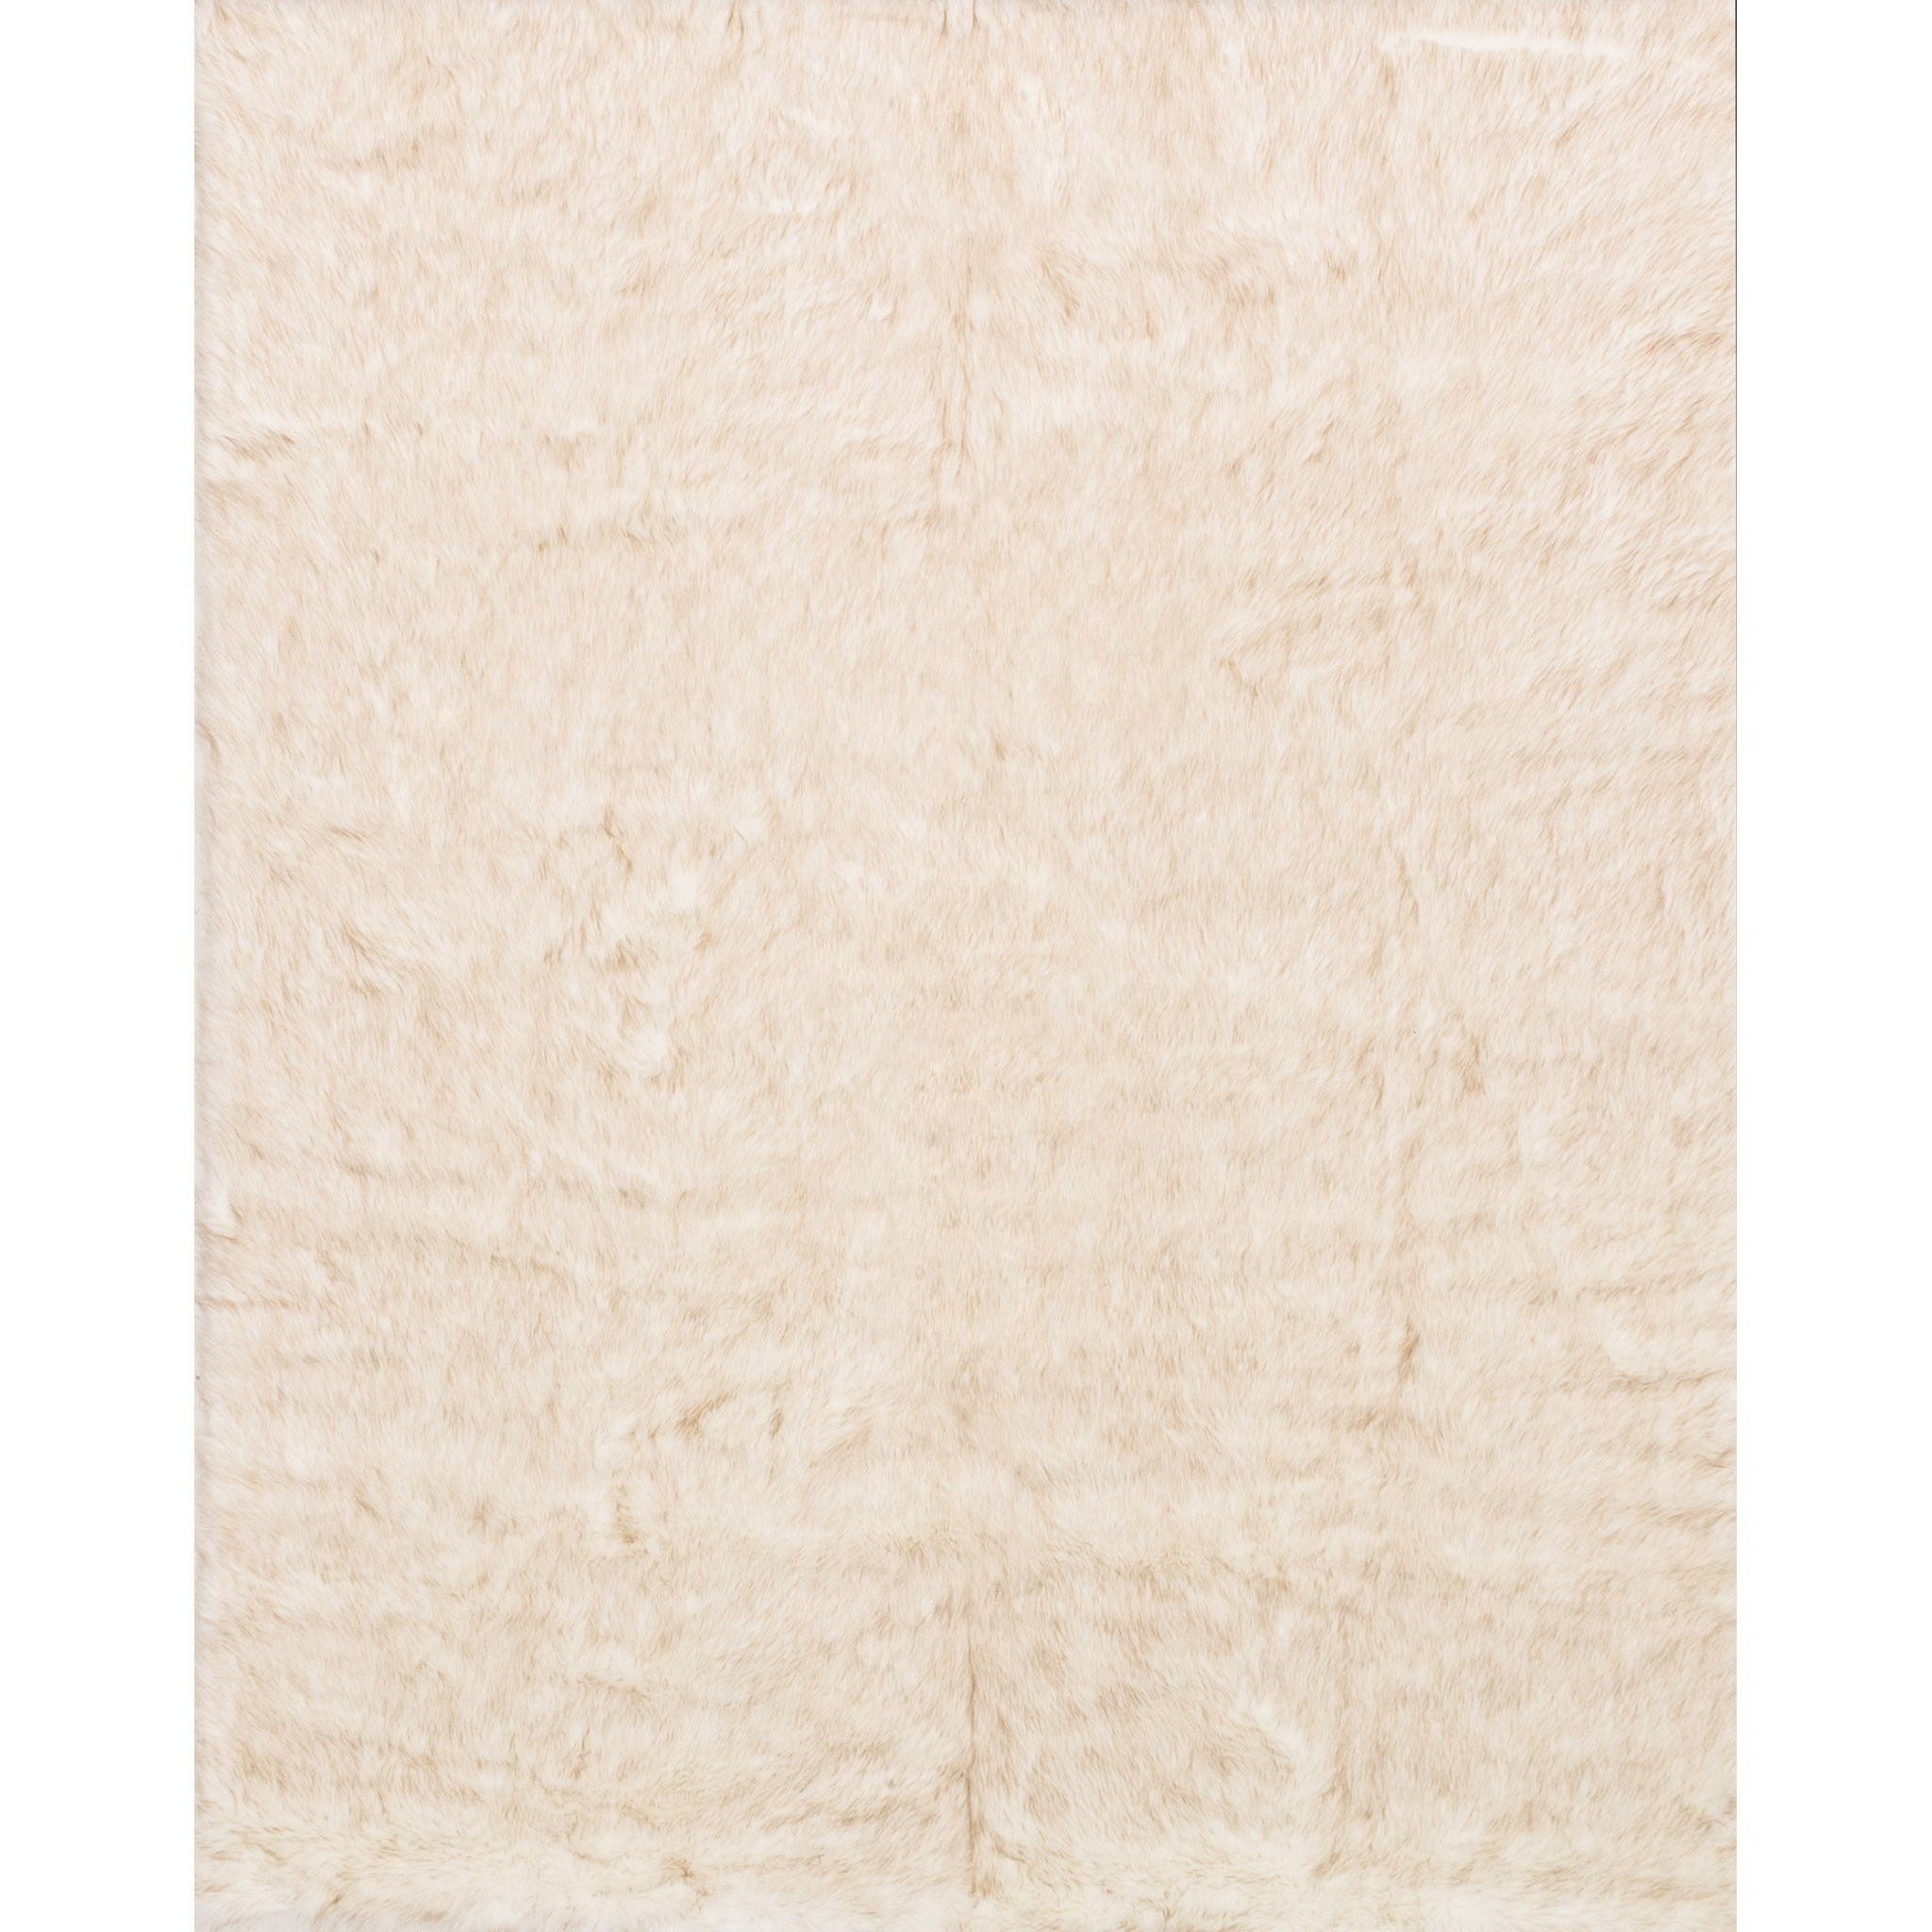 Finley 10' X 13' Area Rug by Loloi Rugs at Virginia Furniture Market